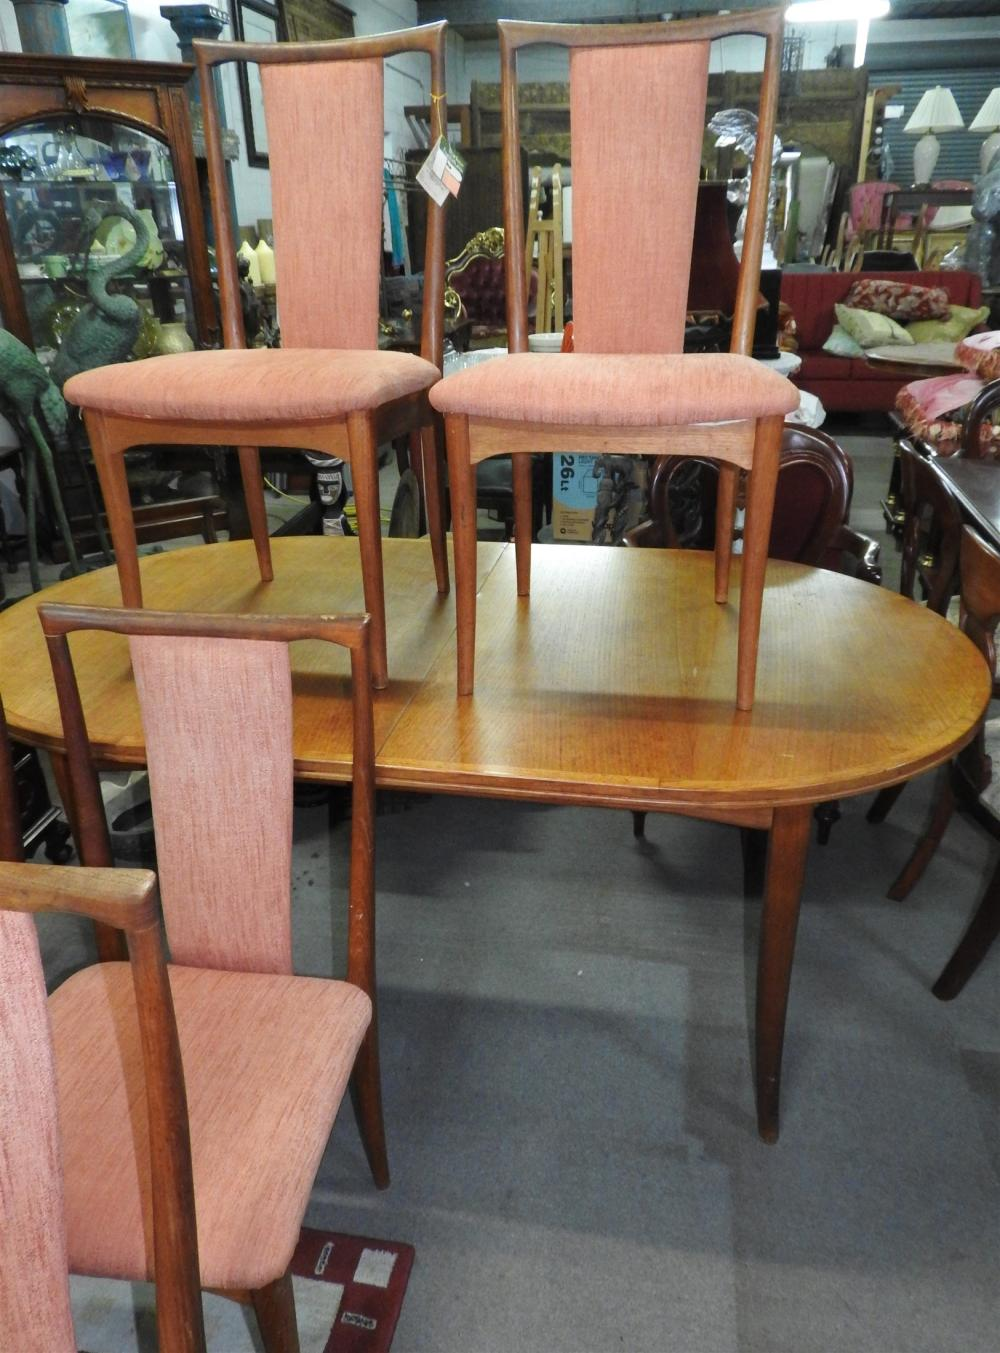 Original Parker DIning Setting w/ tags still attached